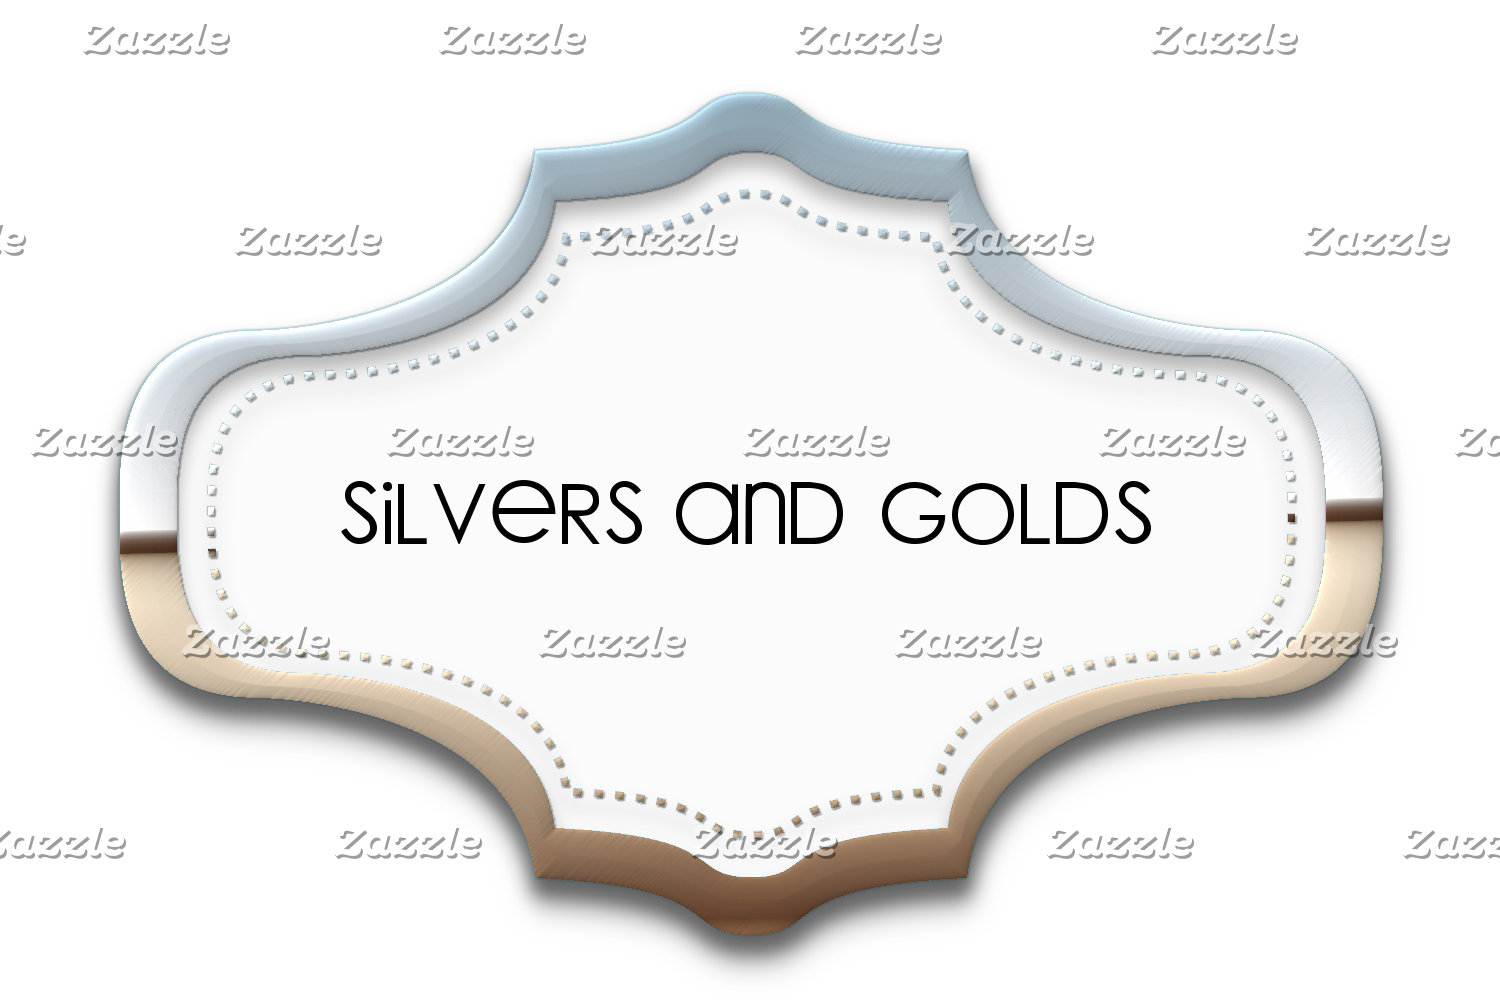 Silvers and Golds